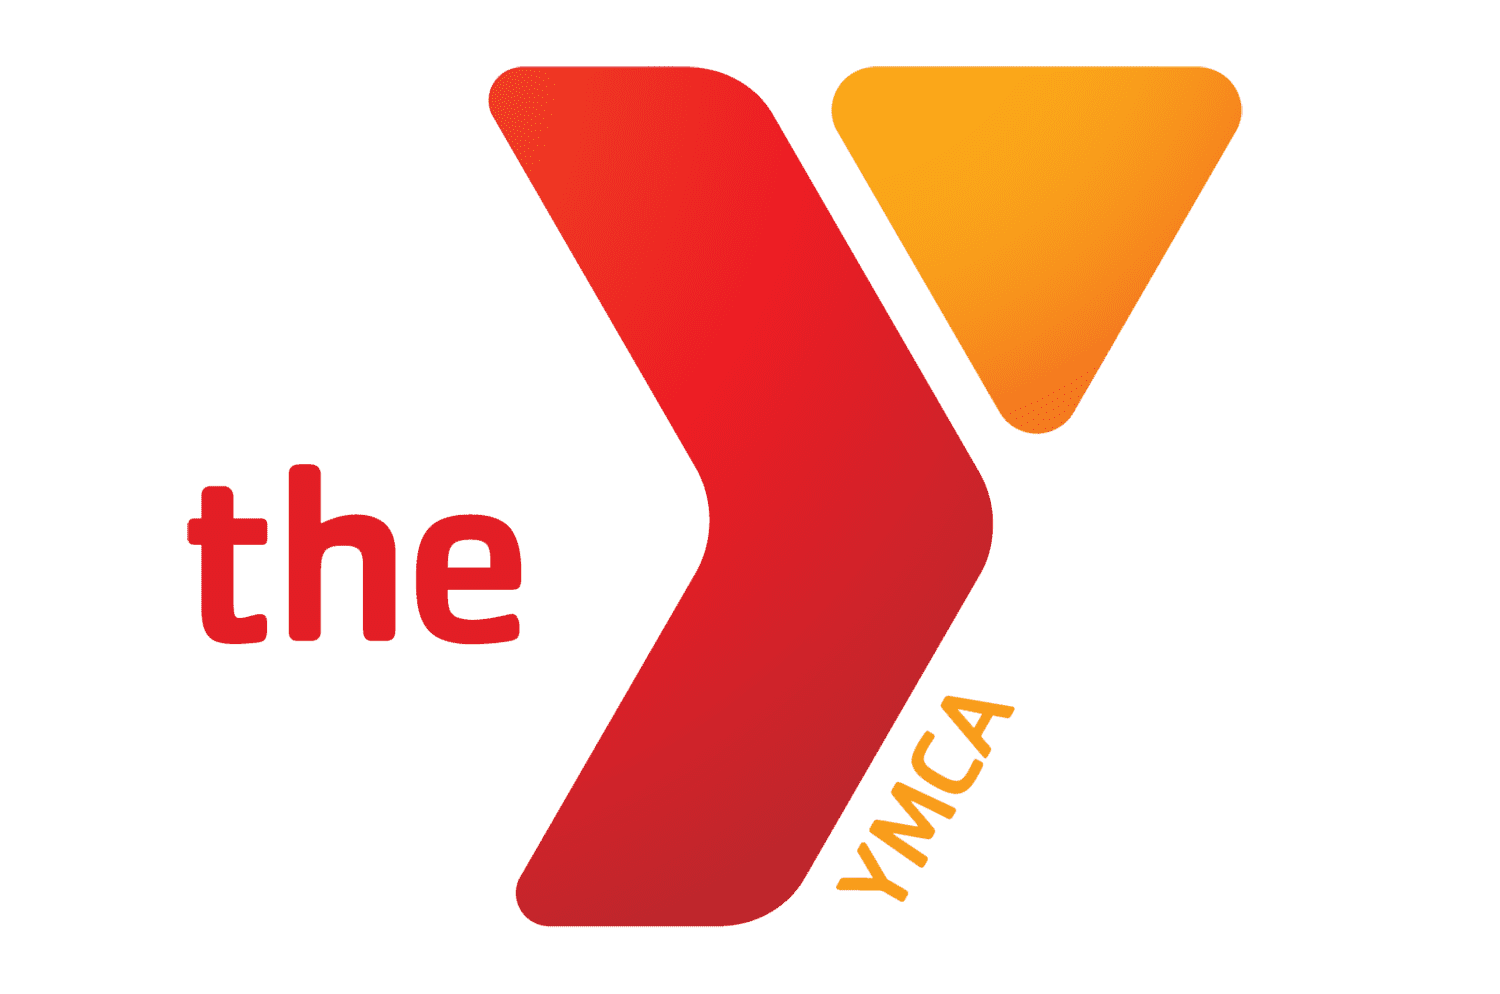 https://suneaglecorporation.com/wp-content/uploads/2018/06/YMCA-Logo.png